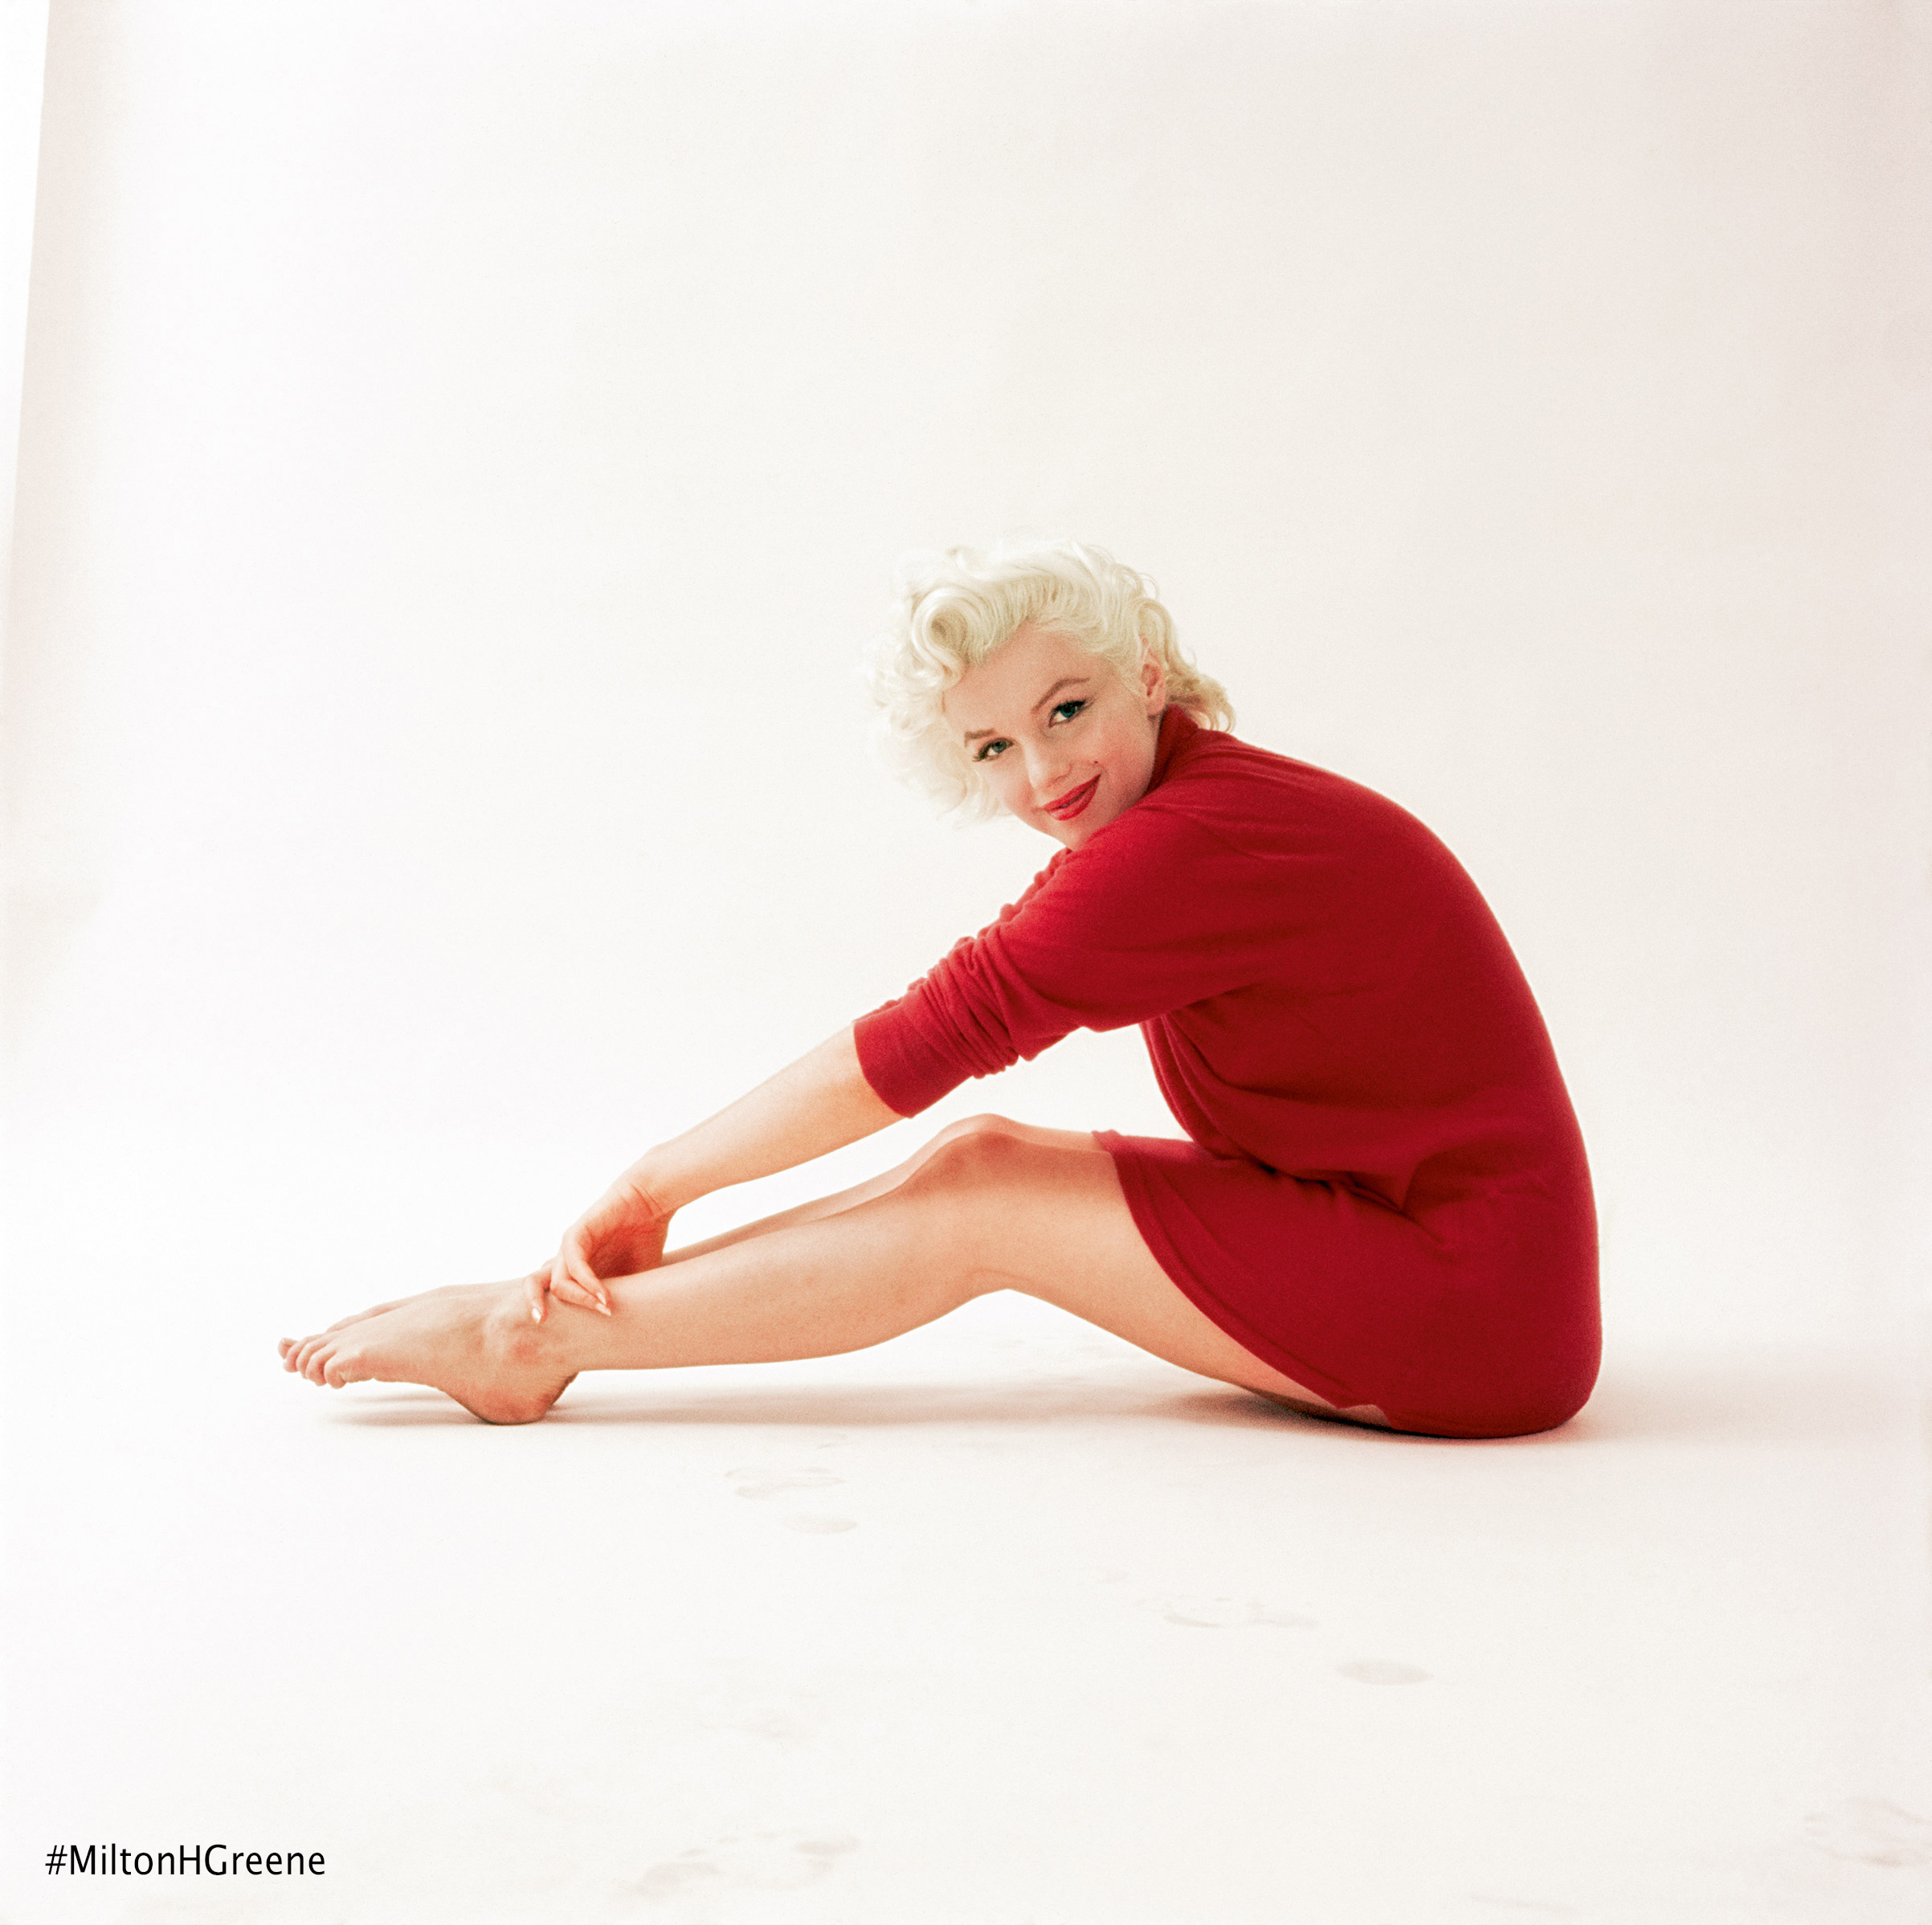 Marilyn Monroe from the July 1955 Red Sweater session. Photographed by Milton H. Greene ©2017 Joshua Greene archiveimages.com